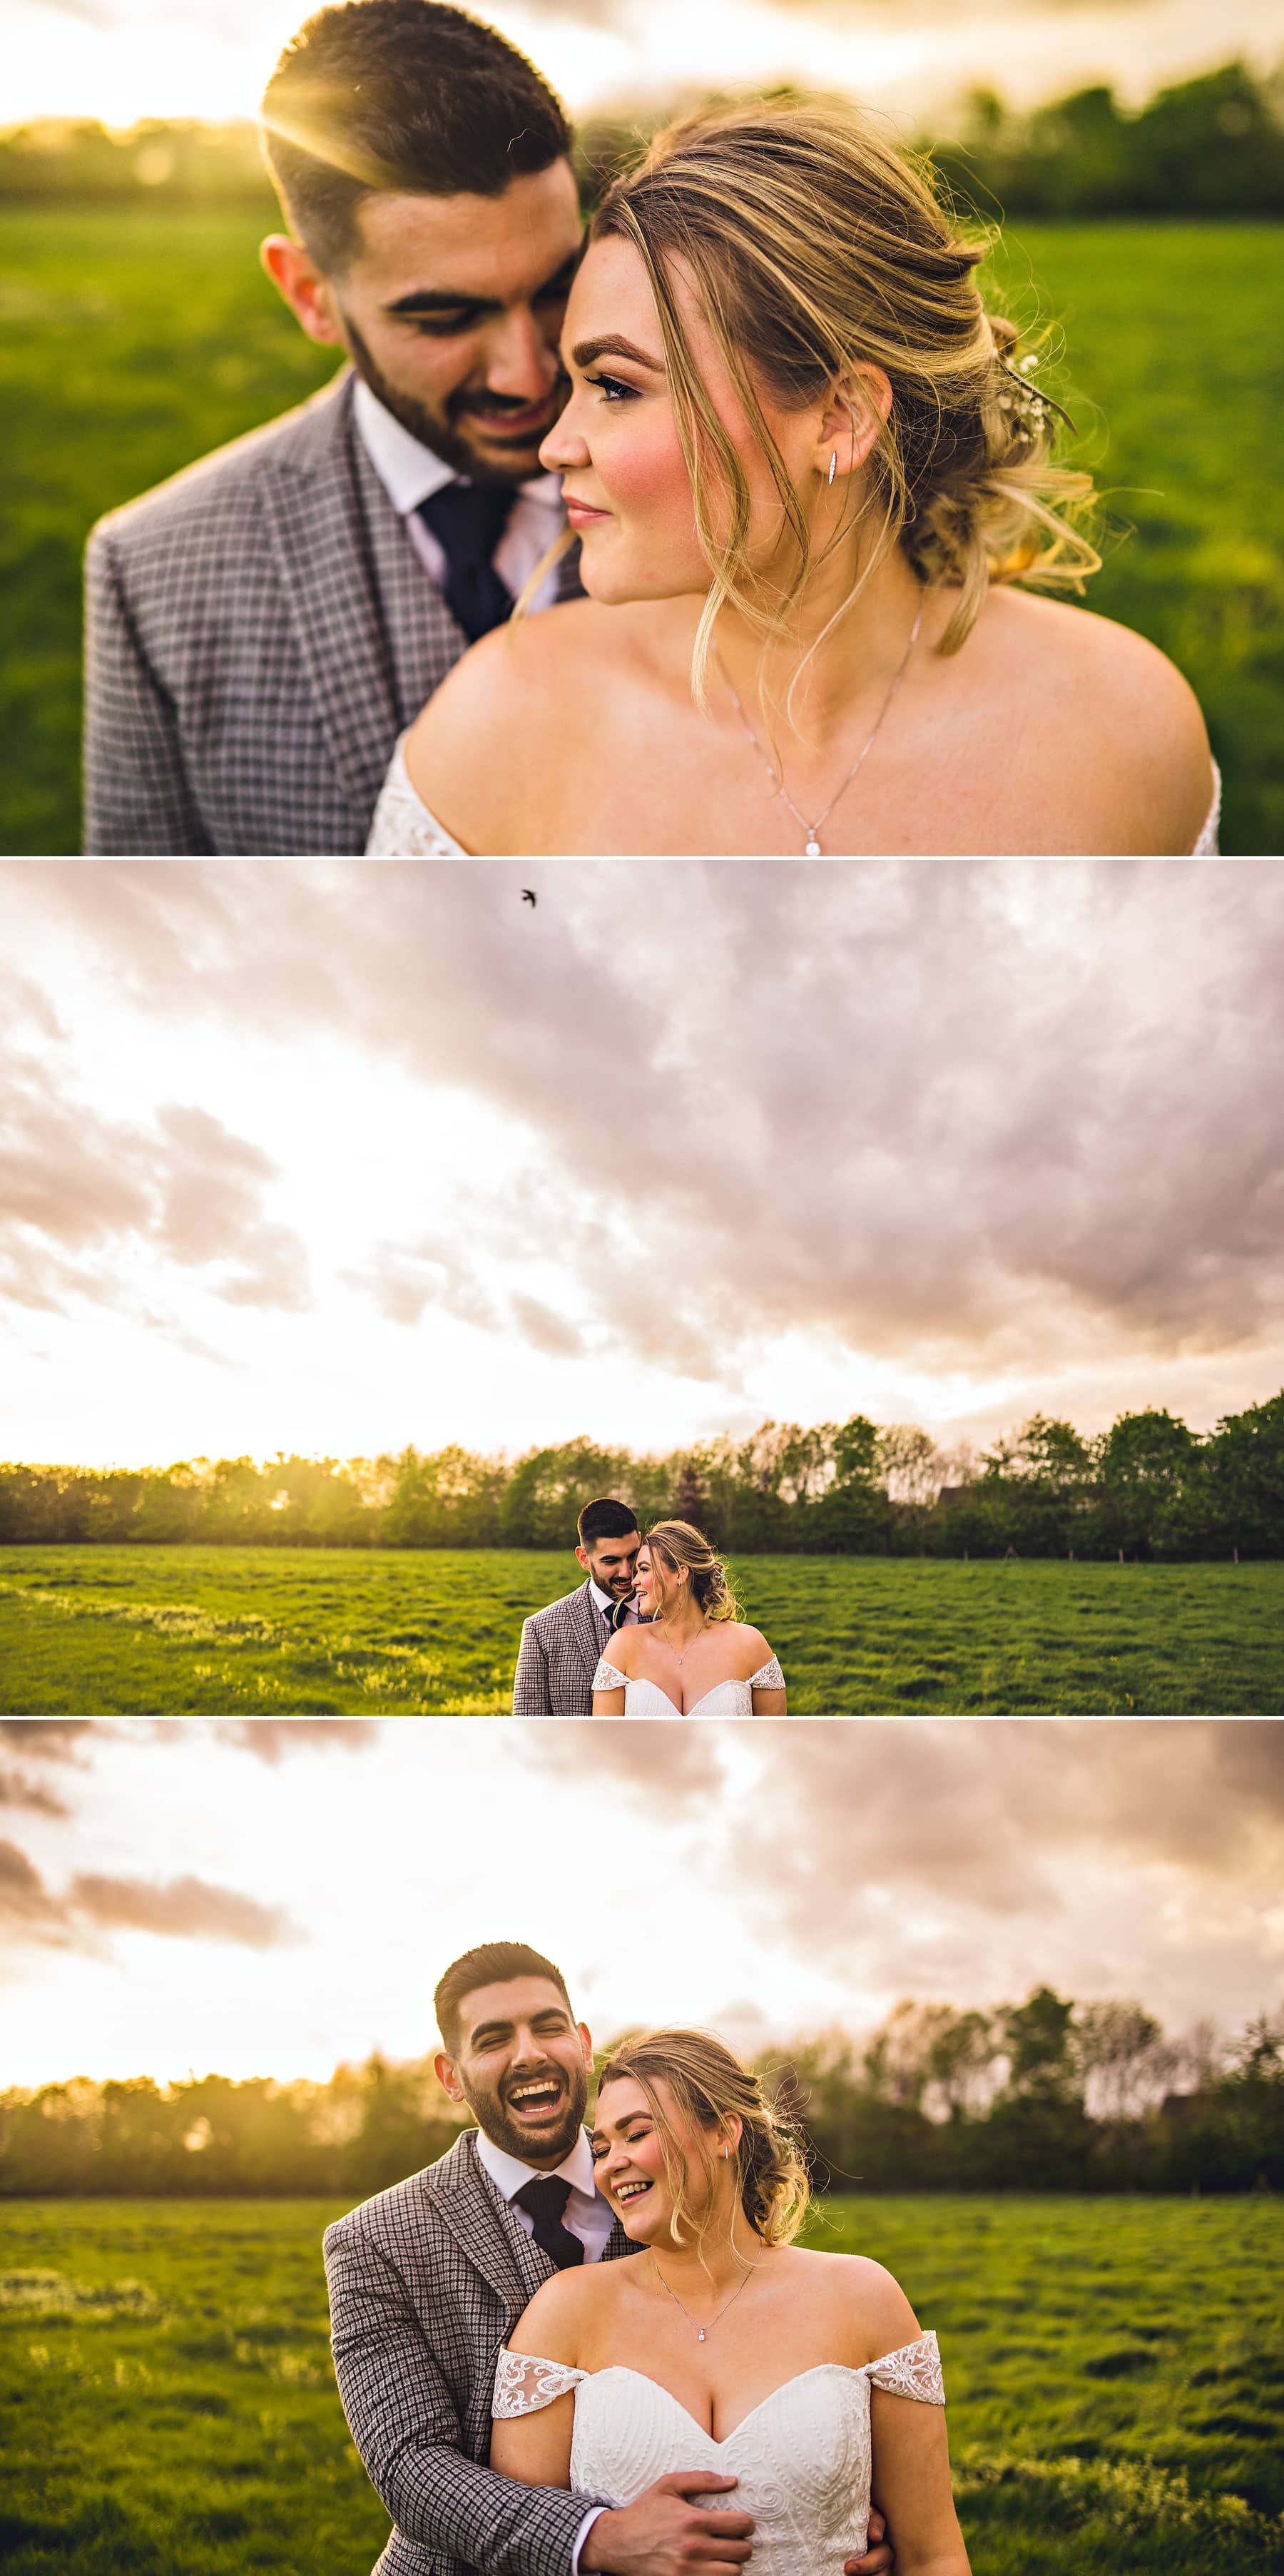 Wedding at Lillibrooke Manor and Barns,Maidenhead London by Navyblur Photography,